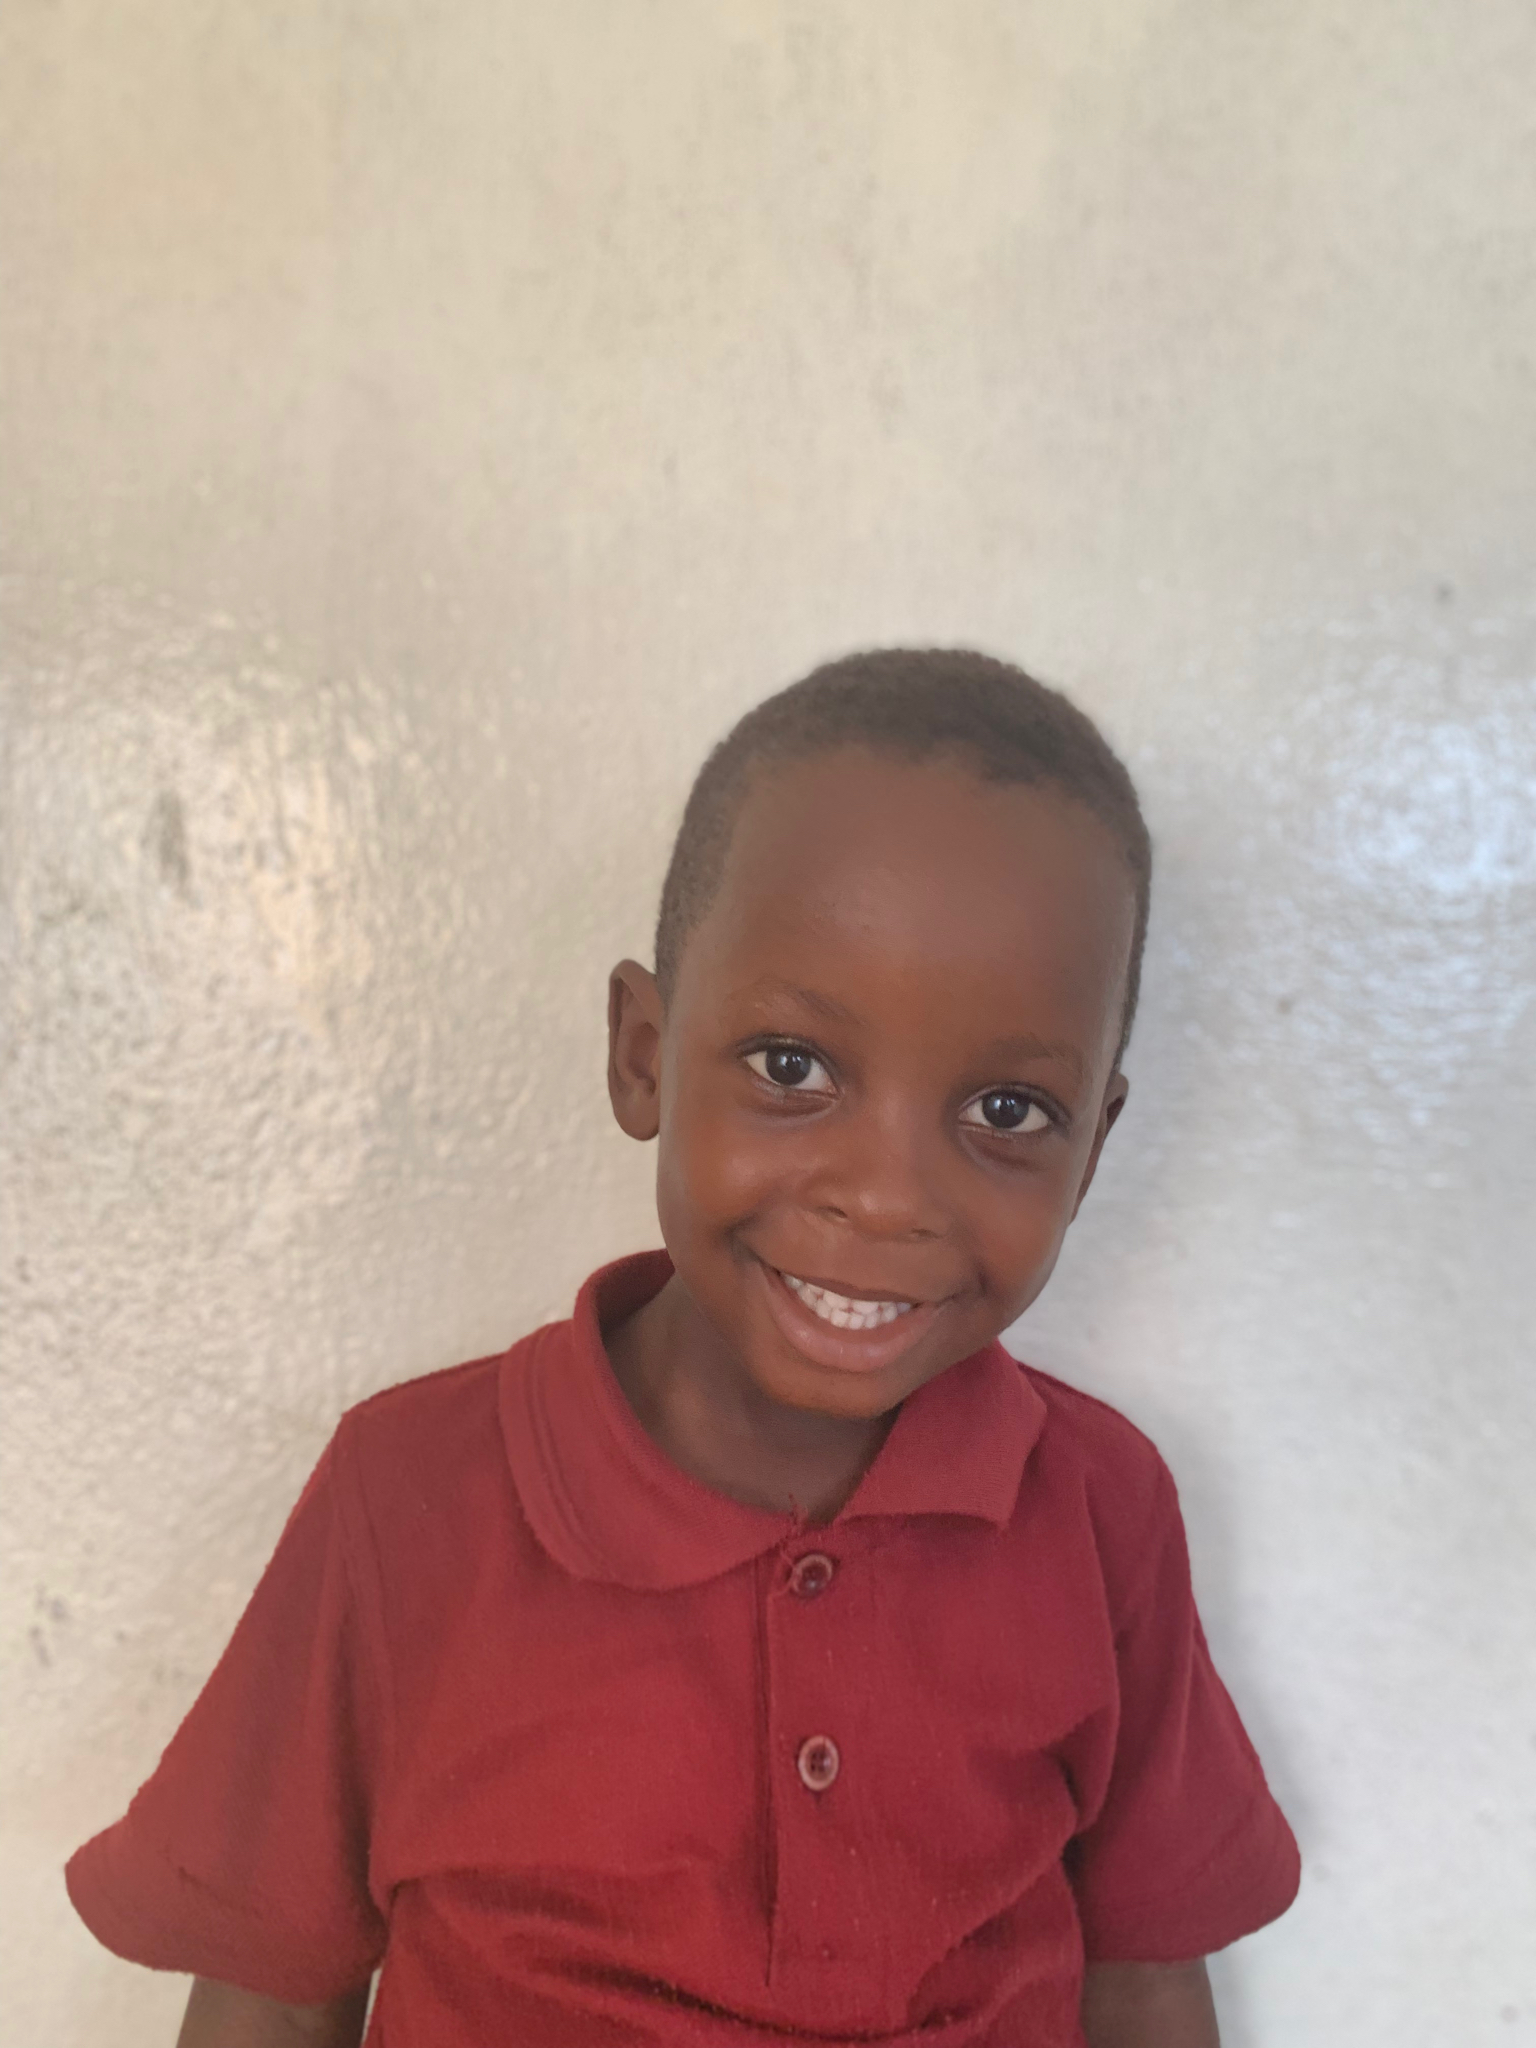 Hello, my name is Success Kpadeh. - Success is a 4-year-old boy.Success lives with his parents, a brother and four sisters; and loves elephants, writing, and the color orange.